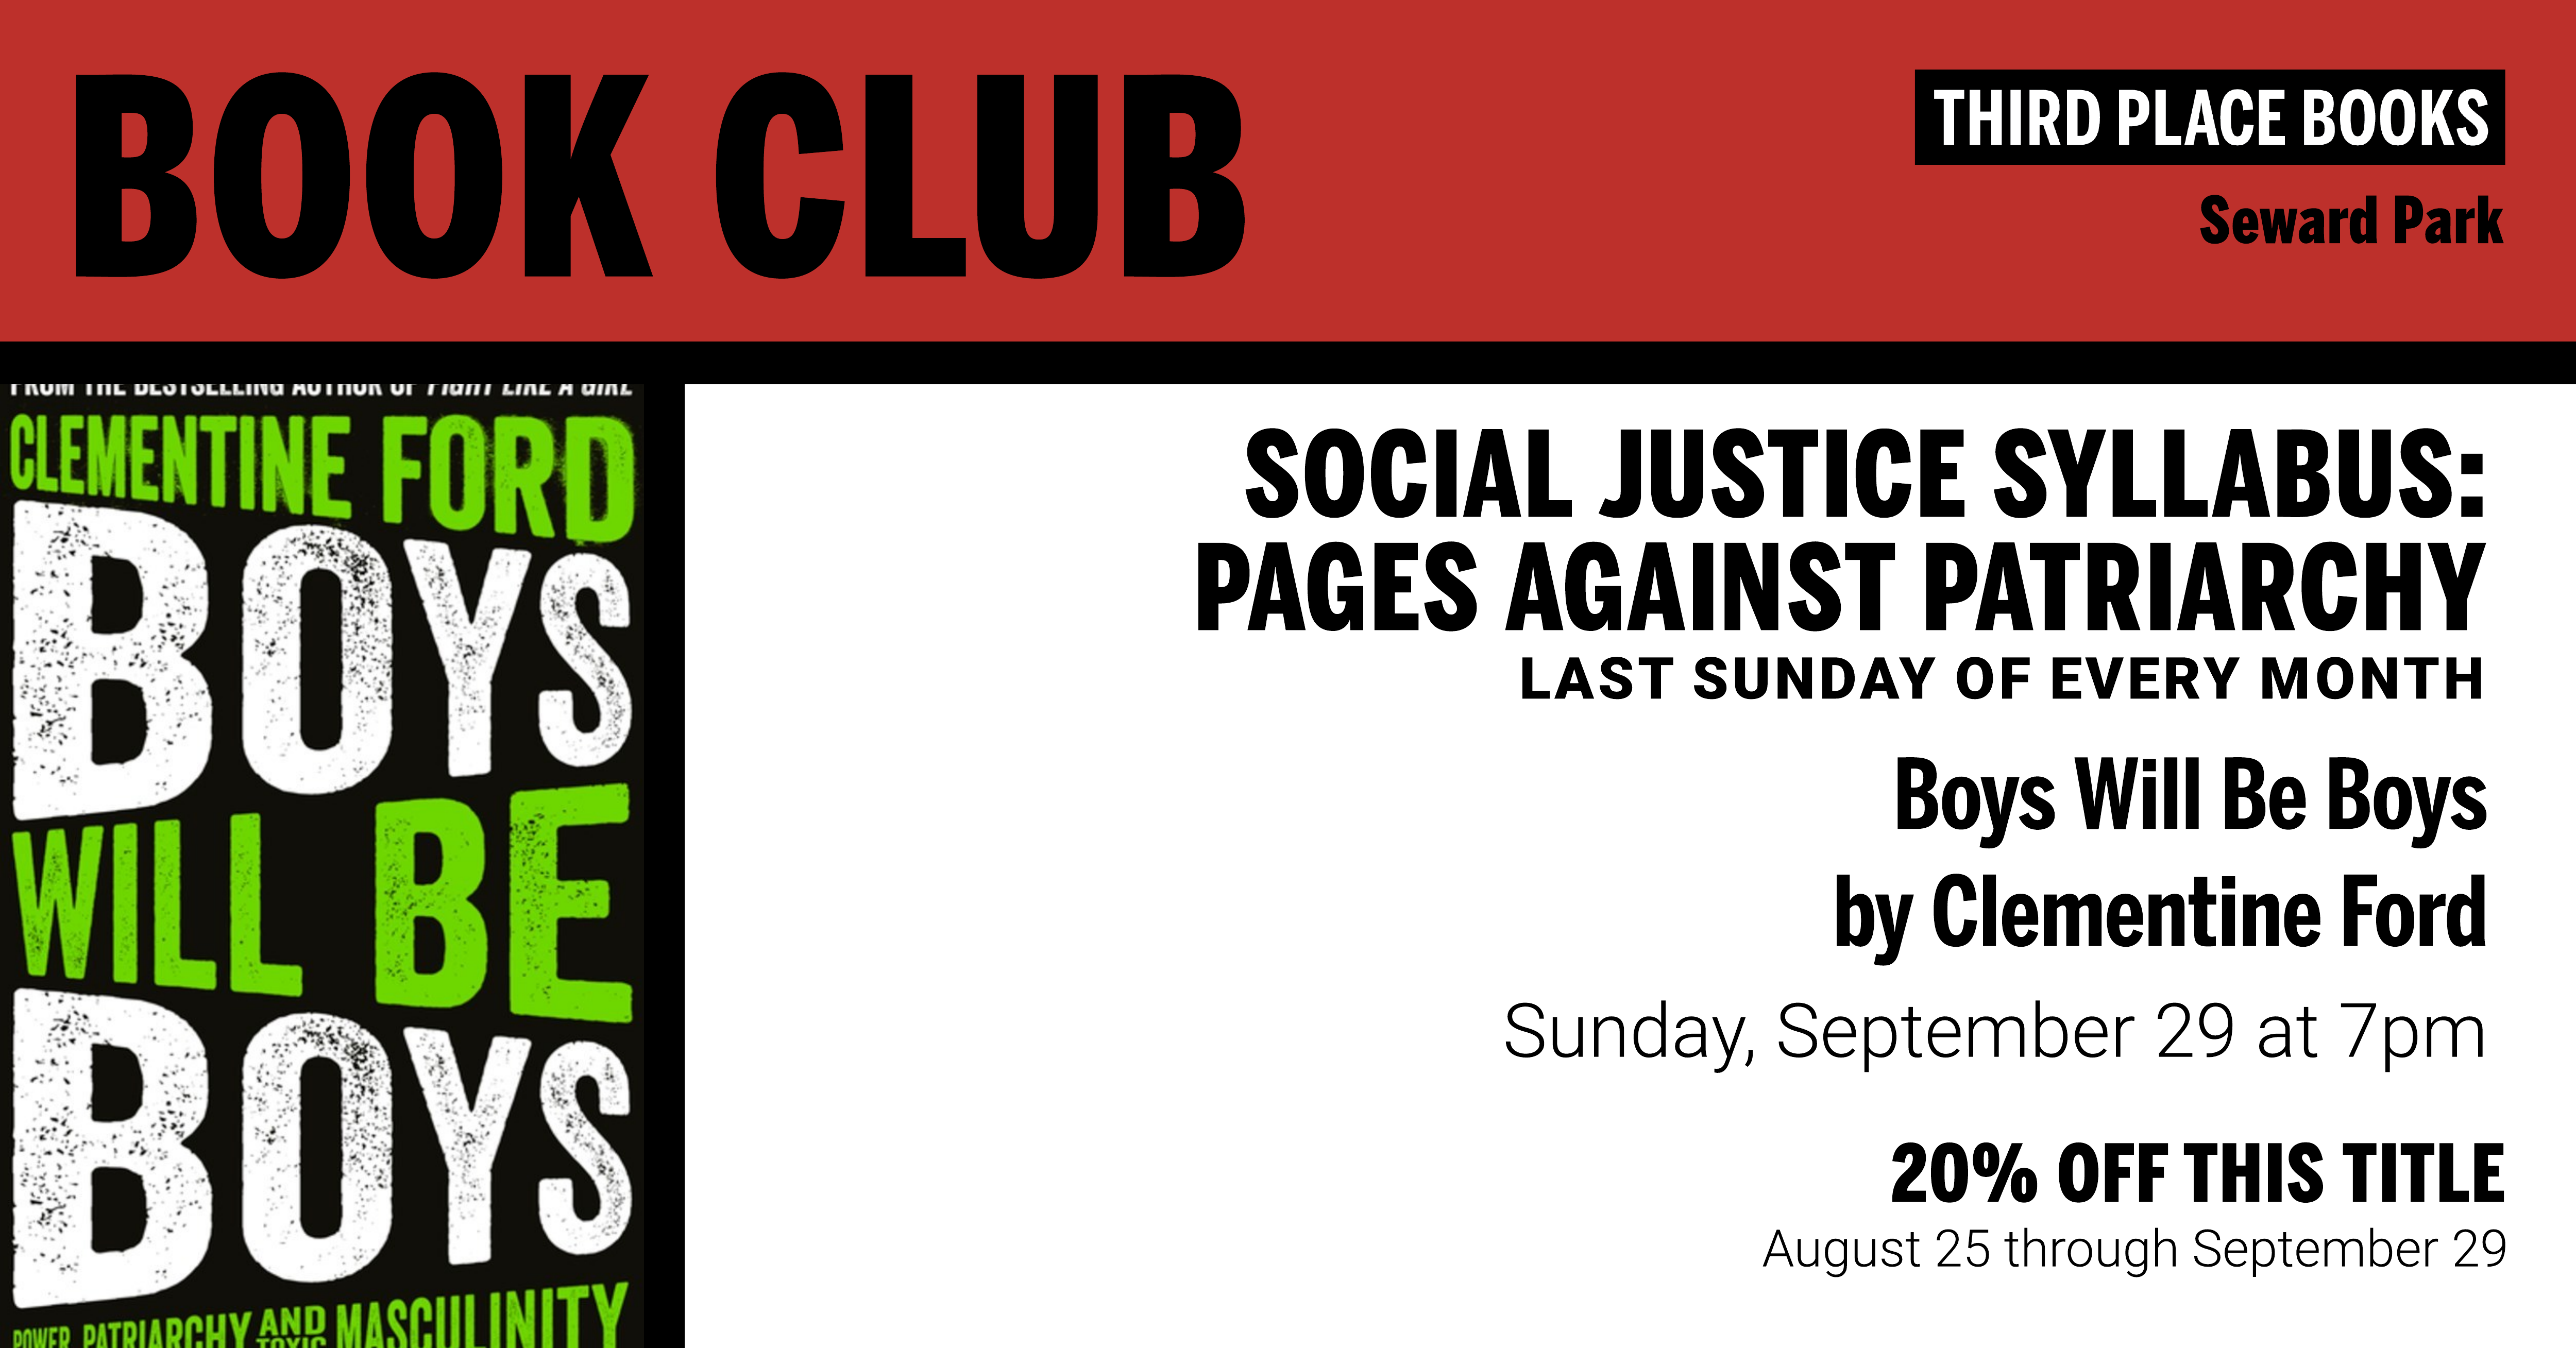 Social Justice Syllabus Book Club discussing Boys Will Be Boys by Clementine Ford on Sunday, September 29 at 7pm